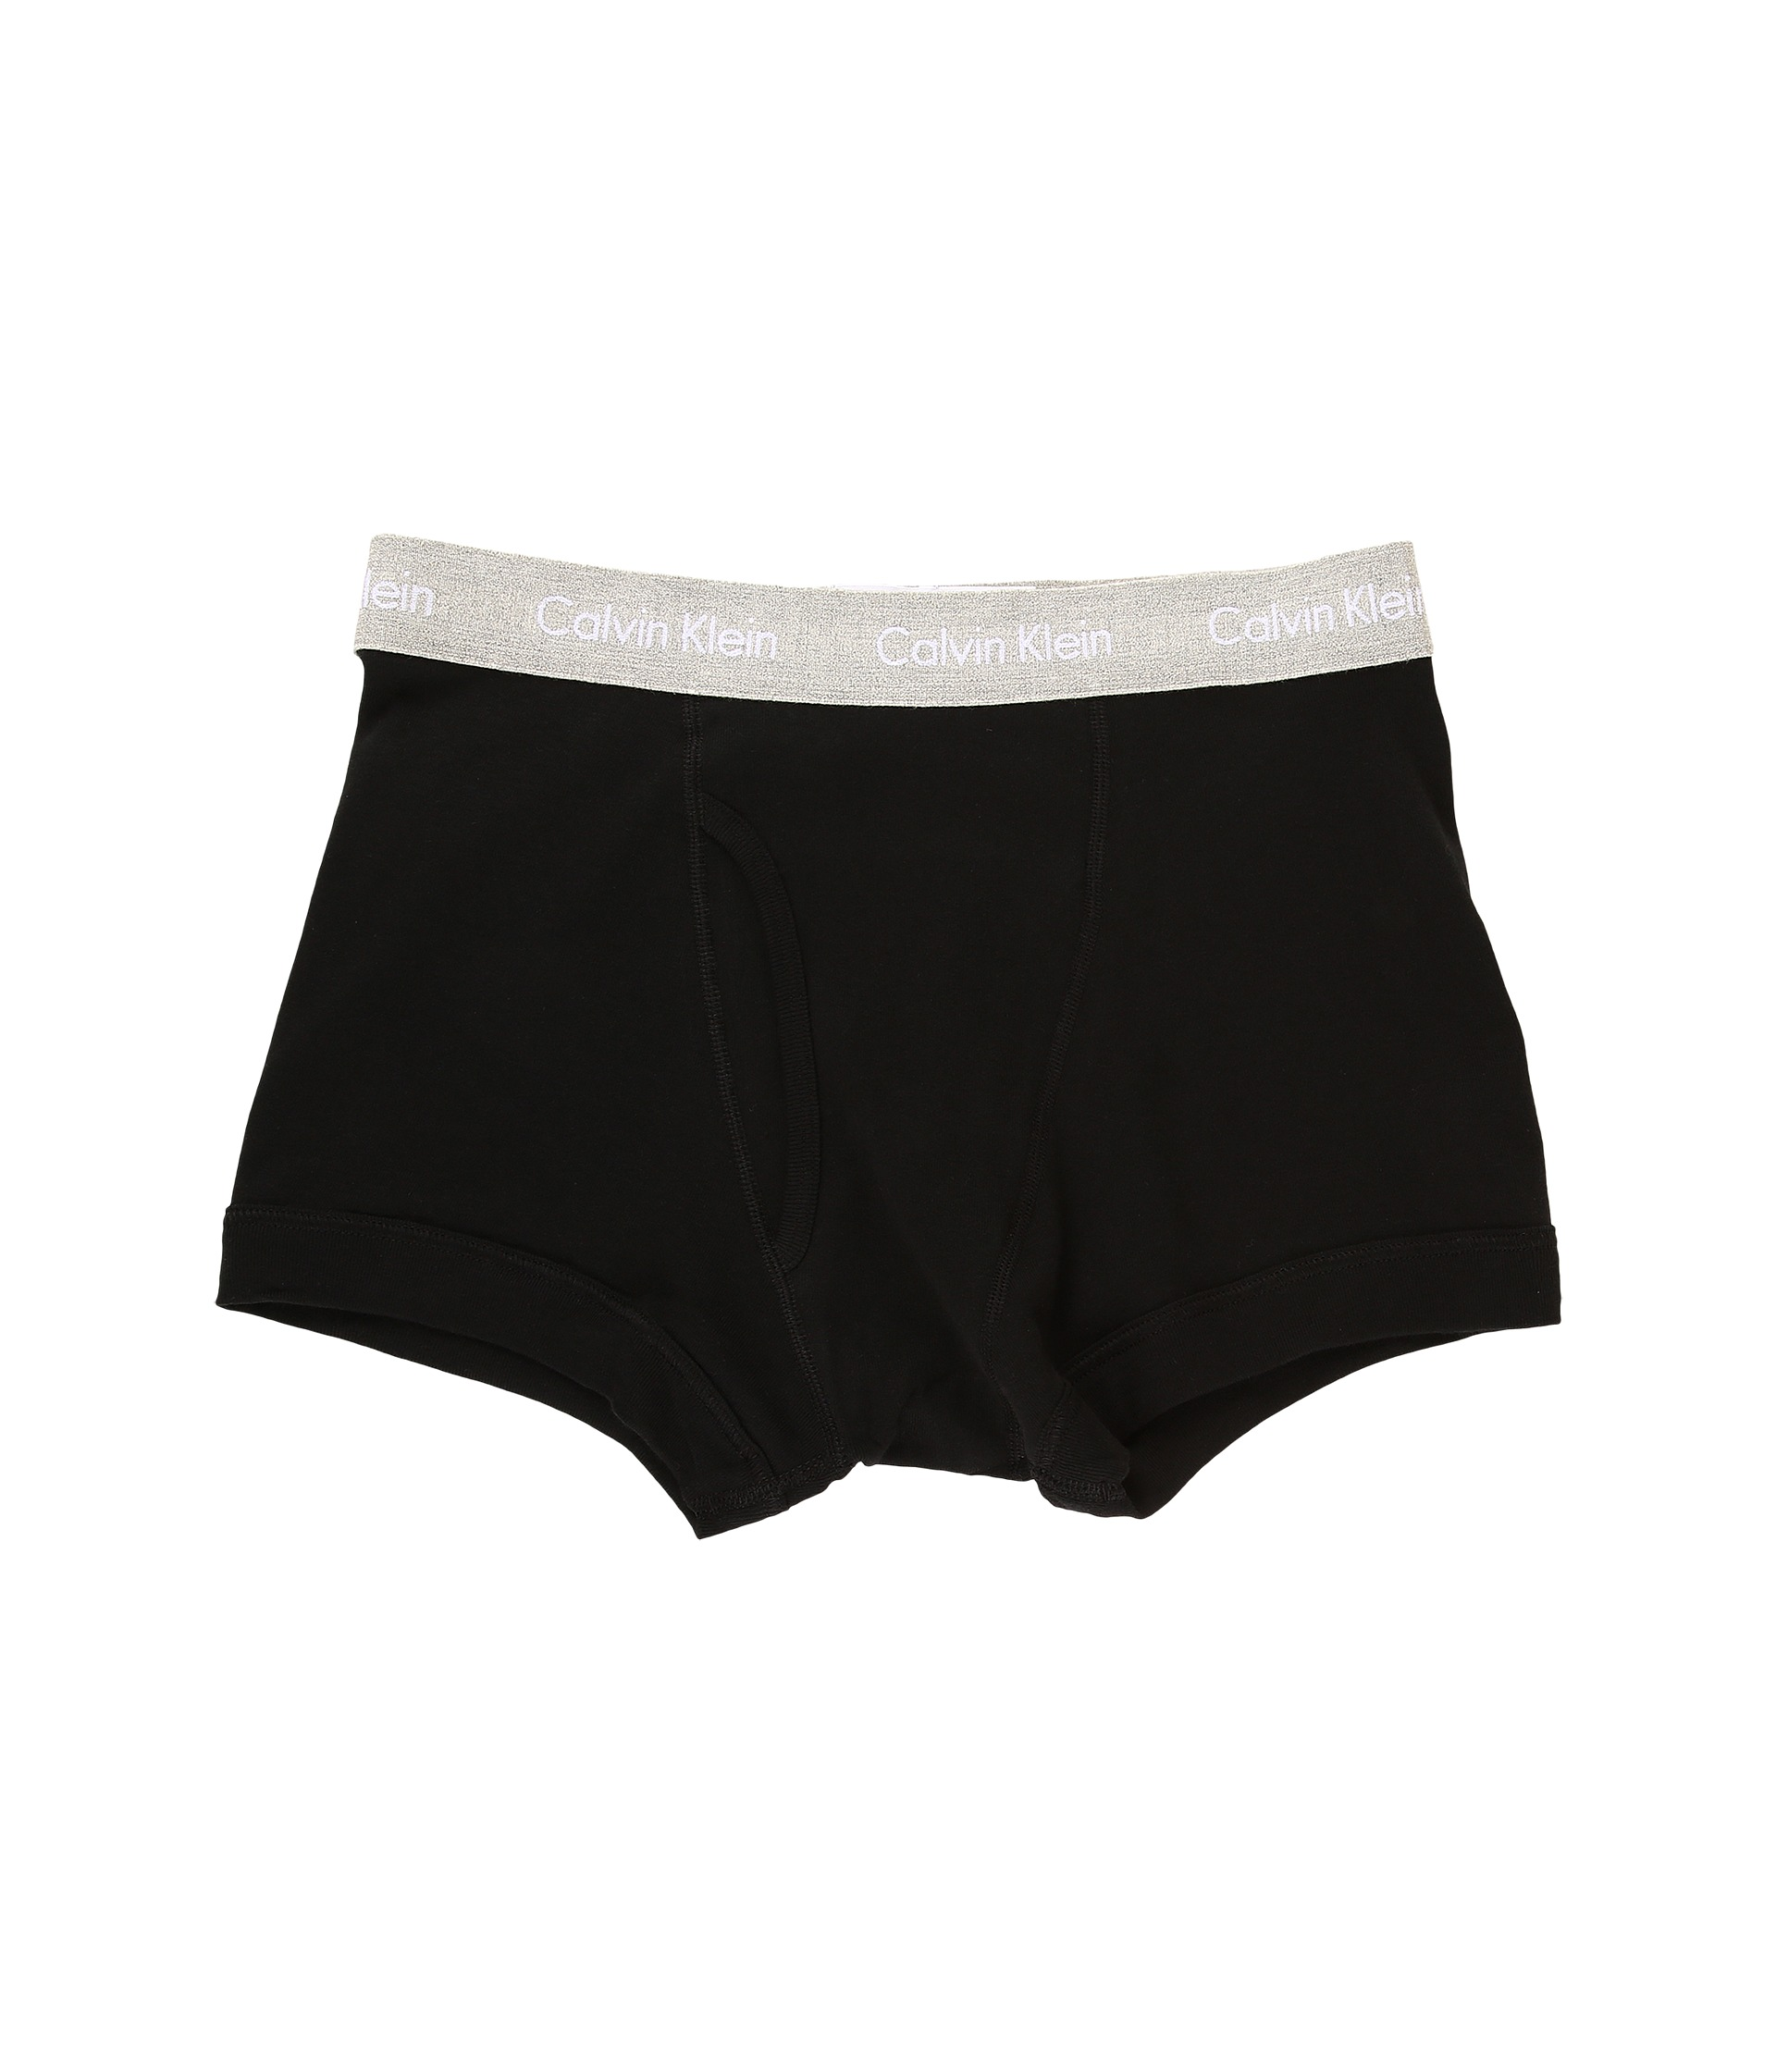 calvin klein underwear cotton classics trunk 3 pack nb1119. Black Bedroom Furniture Sets. Home Design Ideas